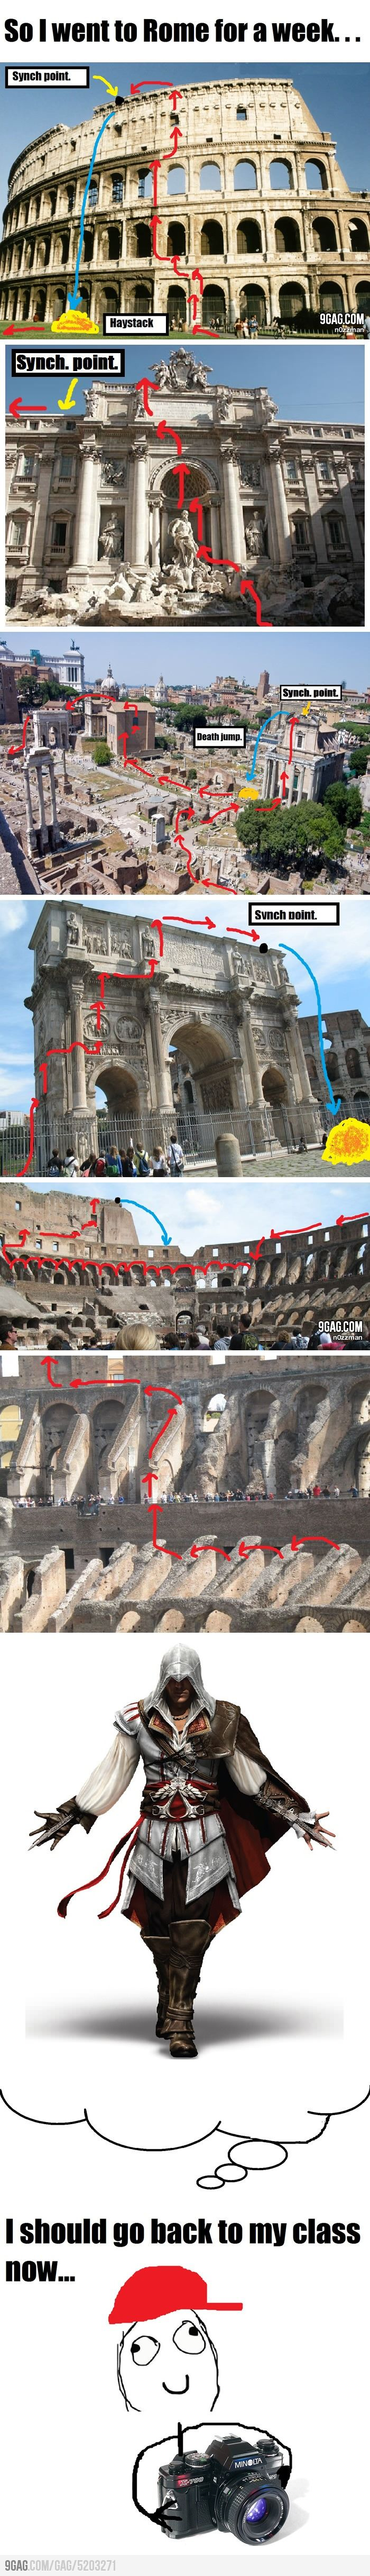 This is what I did summer of 2011 during my Assassin's Creed tour of Italy